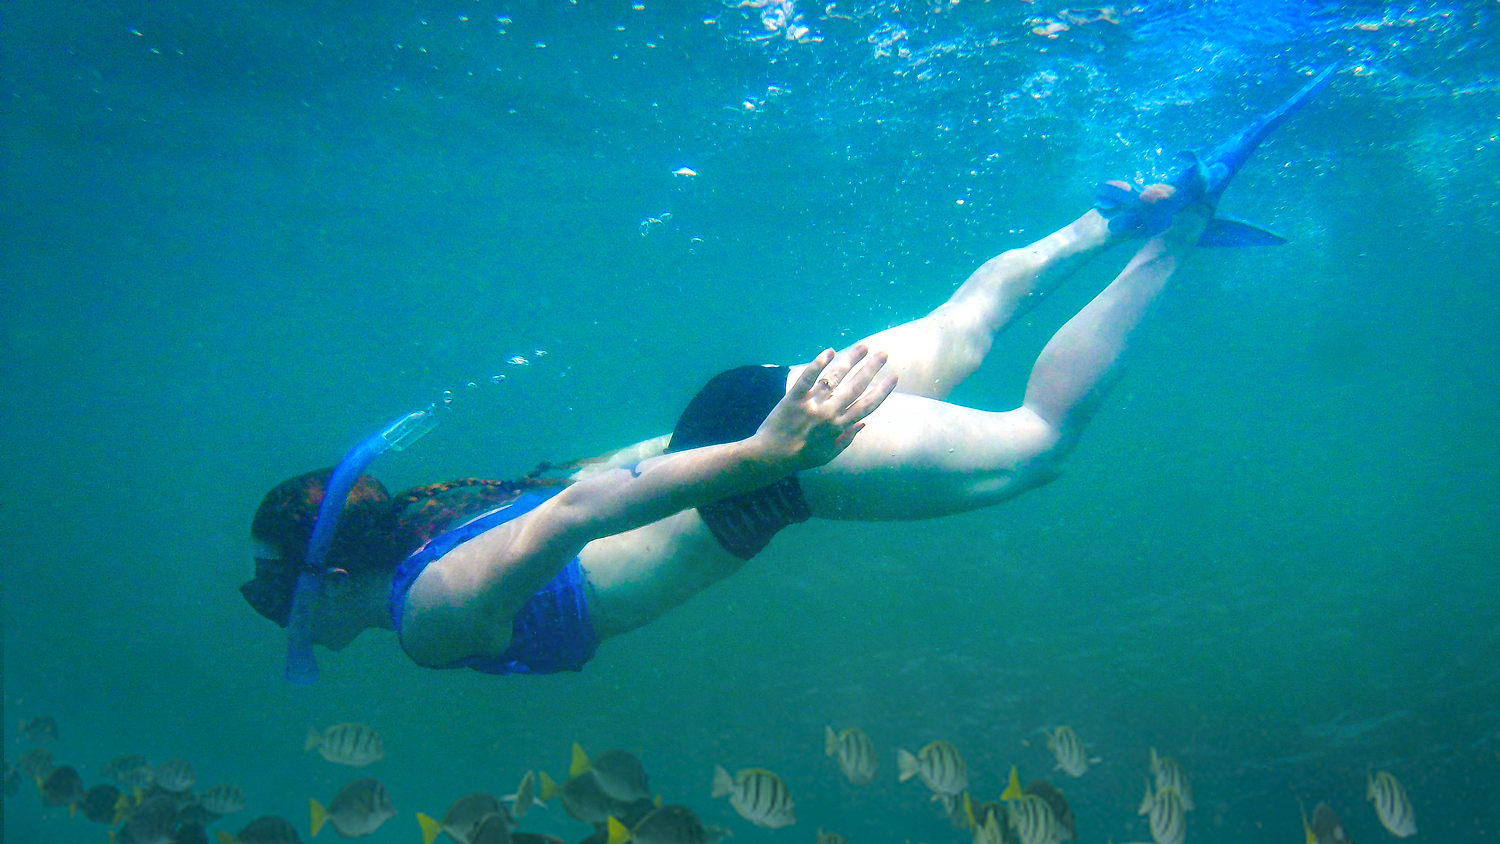 Snorkeling Adventure in Costa Rica! - Travel Vlog